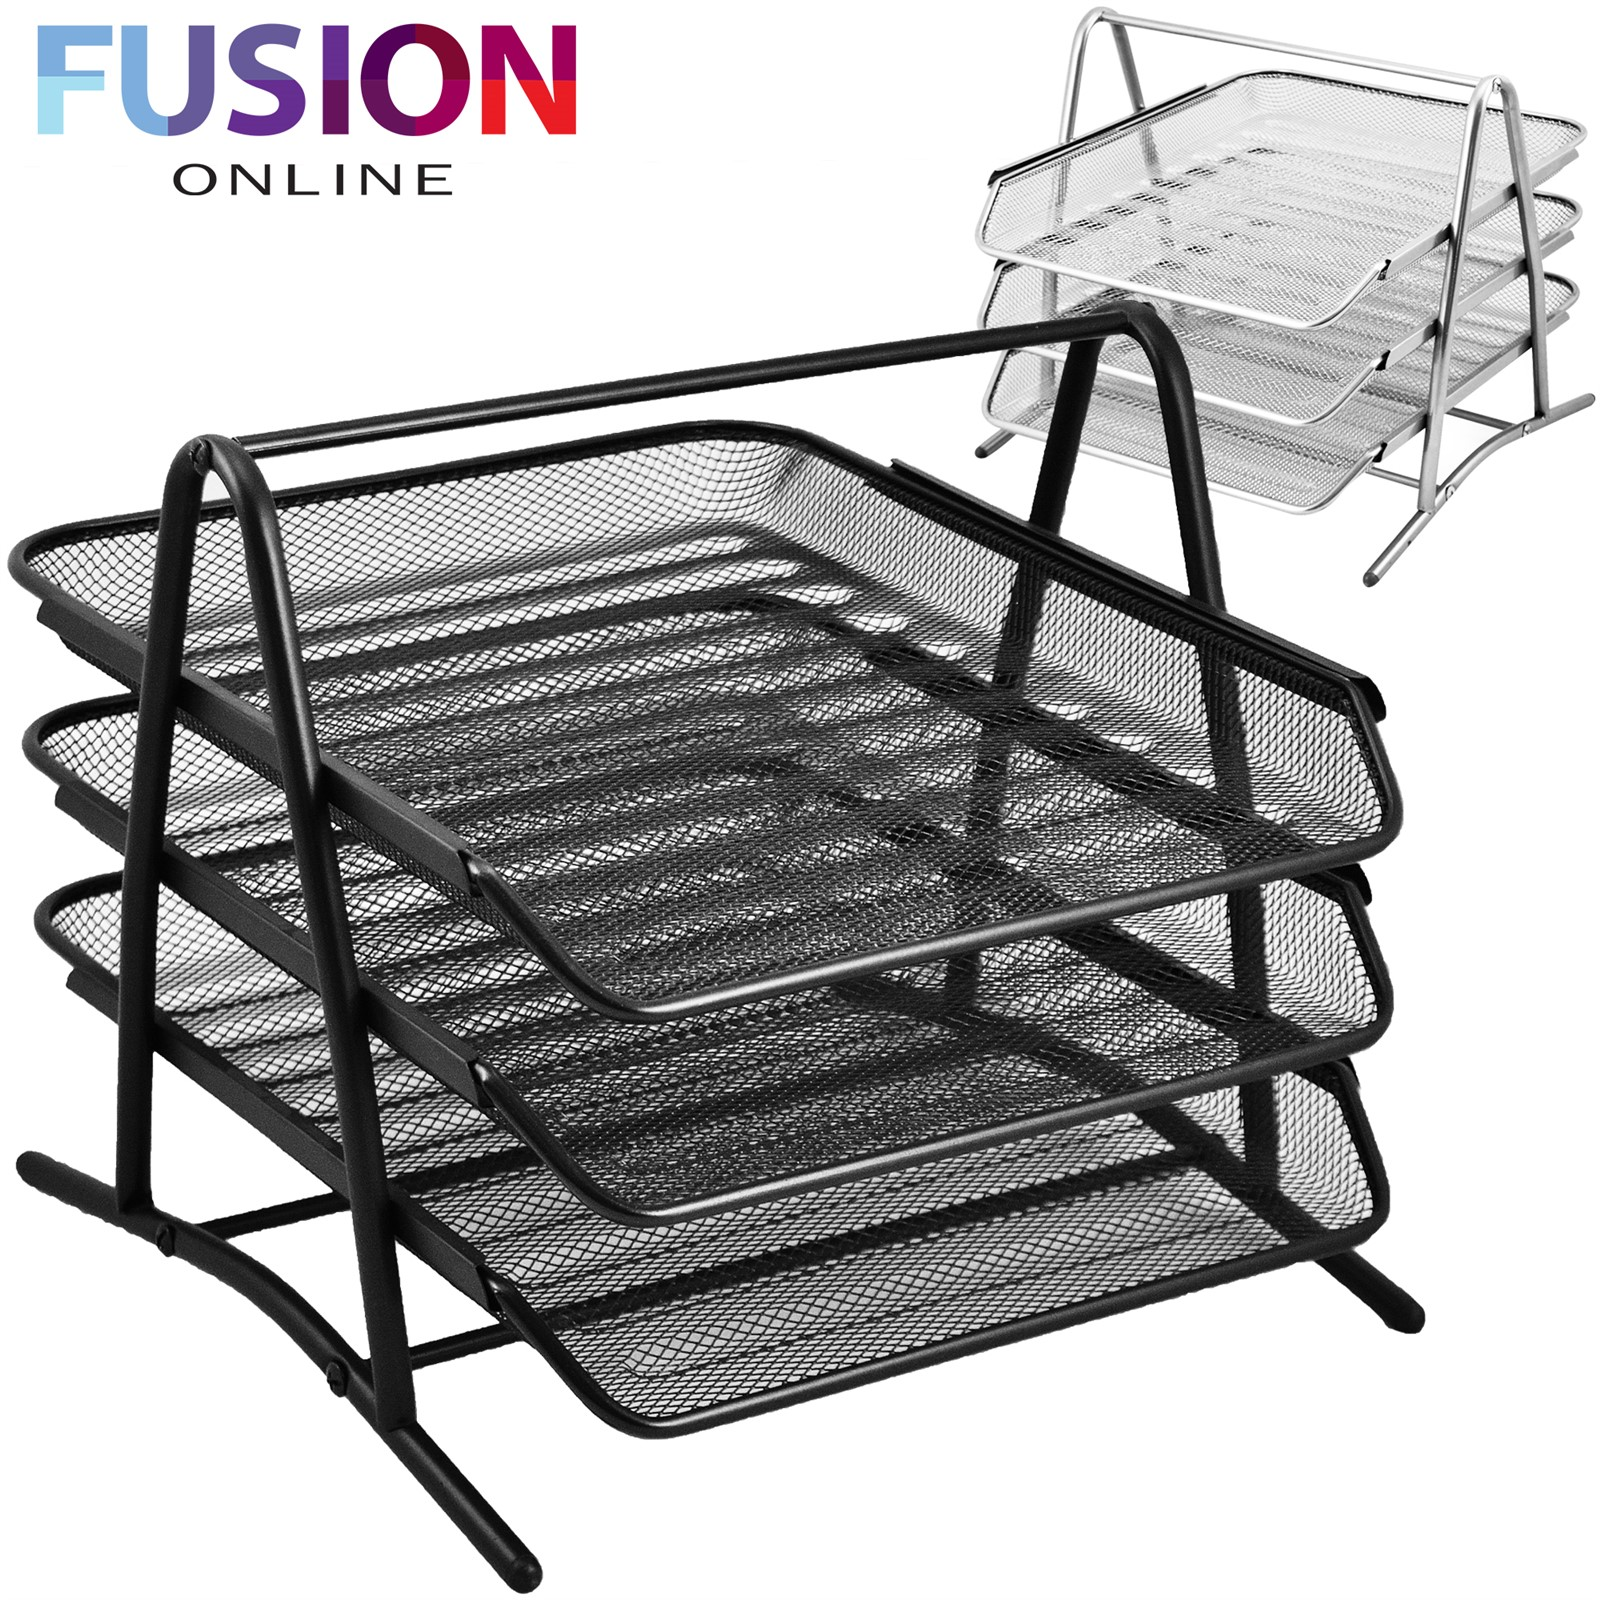 3 TIER A4 OFFICE DOCUMENT TRAY LETTER PAPER ORGANISER STORAGE FILING ...